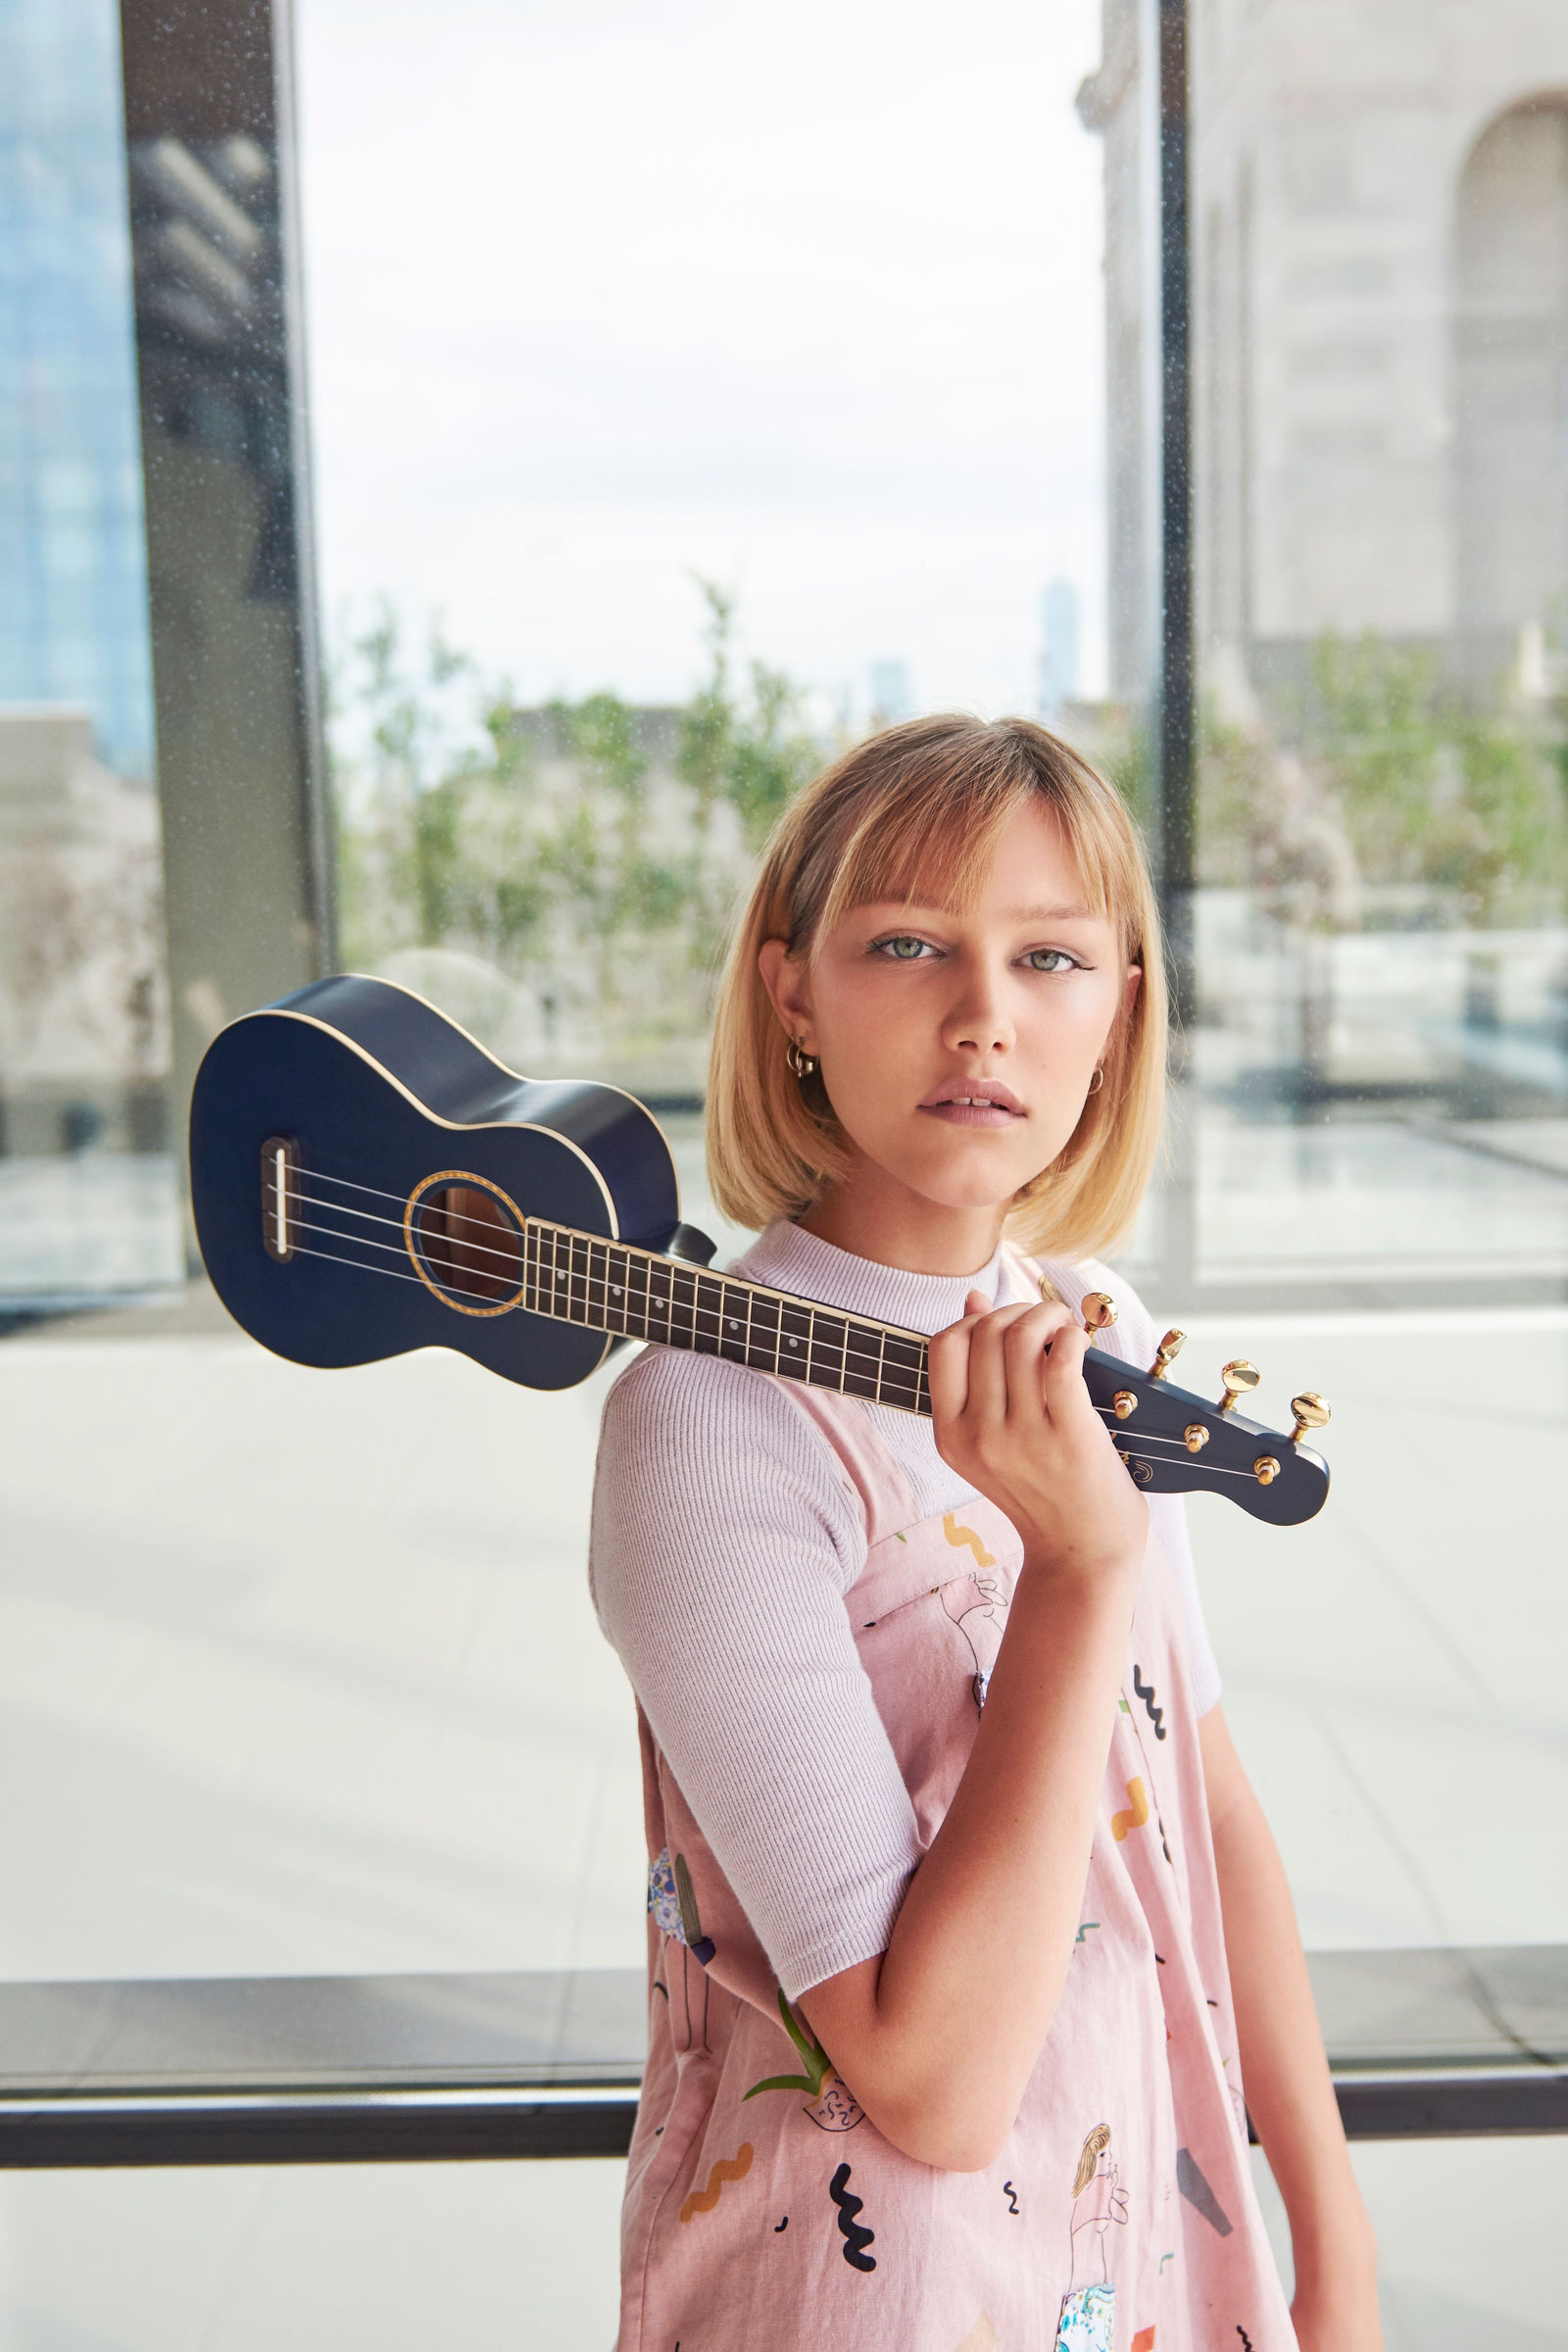 Fender and Grace VanderWaal collaborate on the signature Moonlight Ukulele - a custom, accessibly priced navy-blue soprano uke adorned with all of Grace's personal touches- available now, for fans to play by the beach or at home with friends and family (photo credit: by Blythe Thomas).